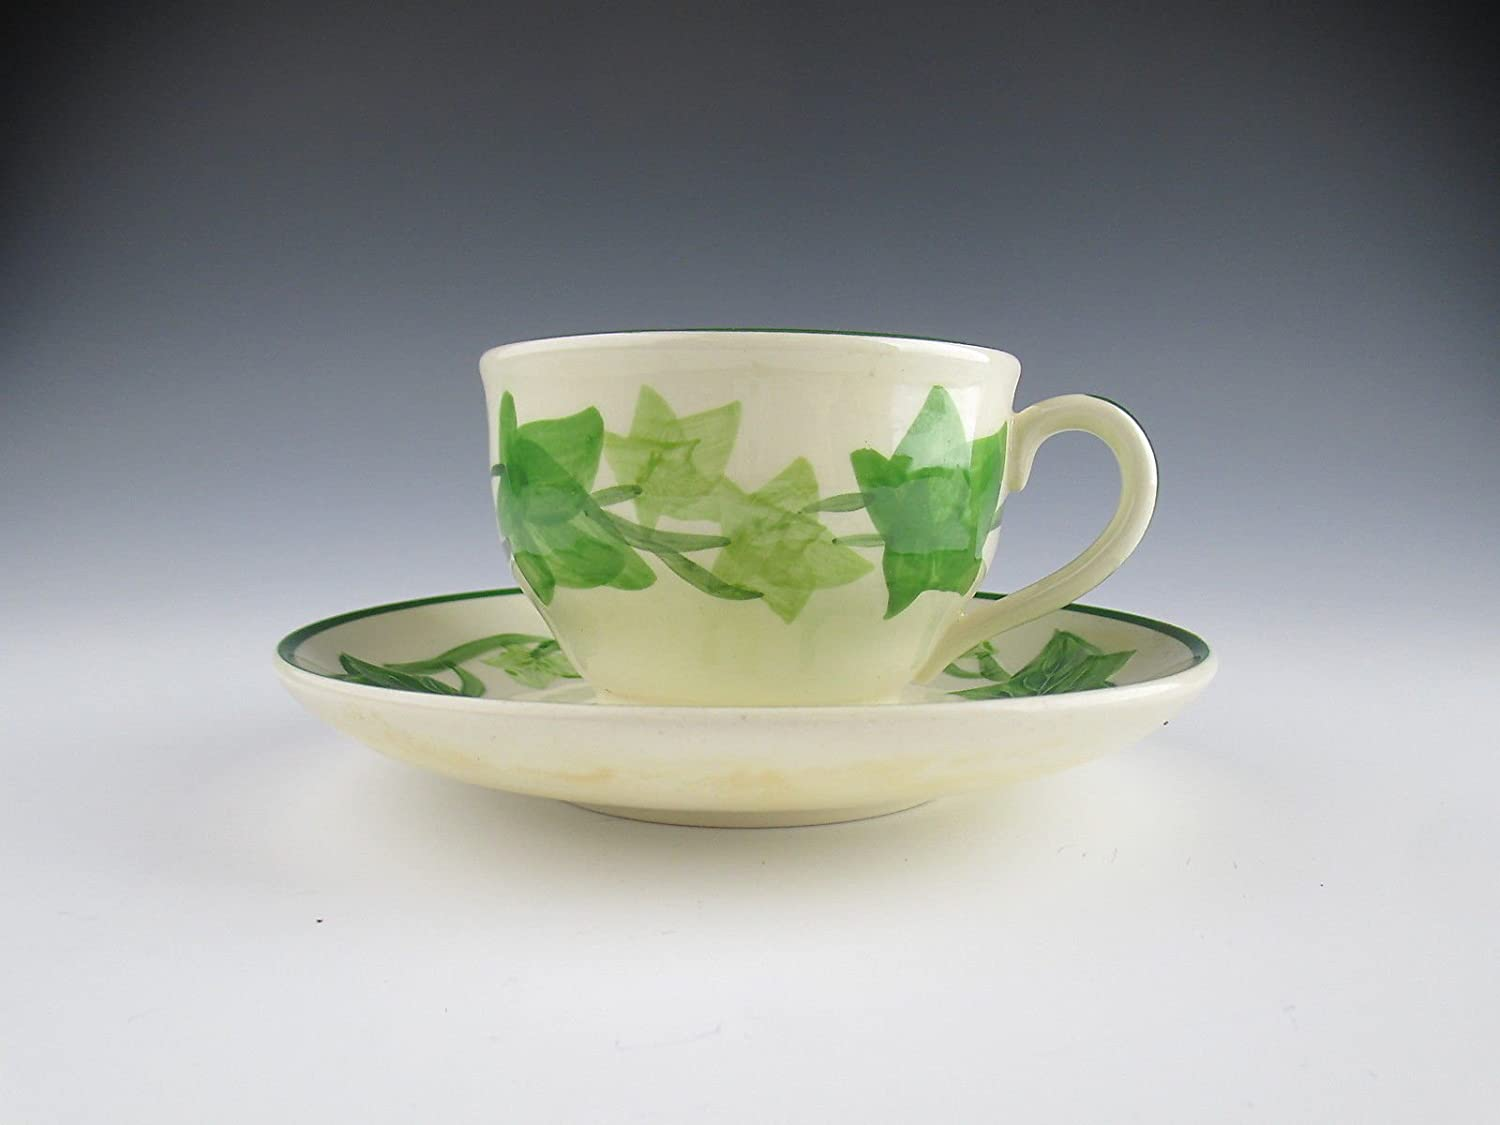 Franciscan China IVY Cup and Saucer Set(s) EXCELLENT